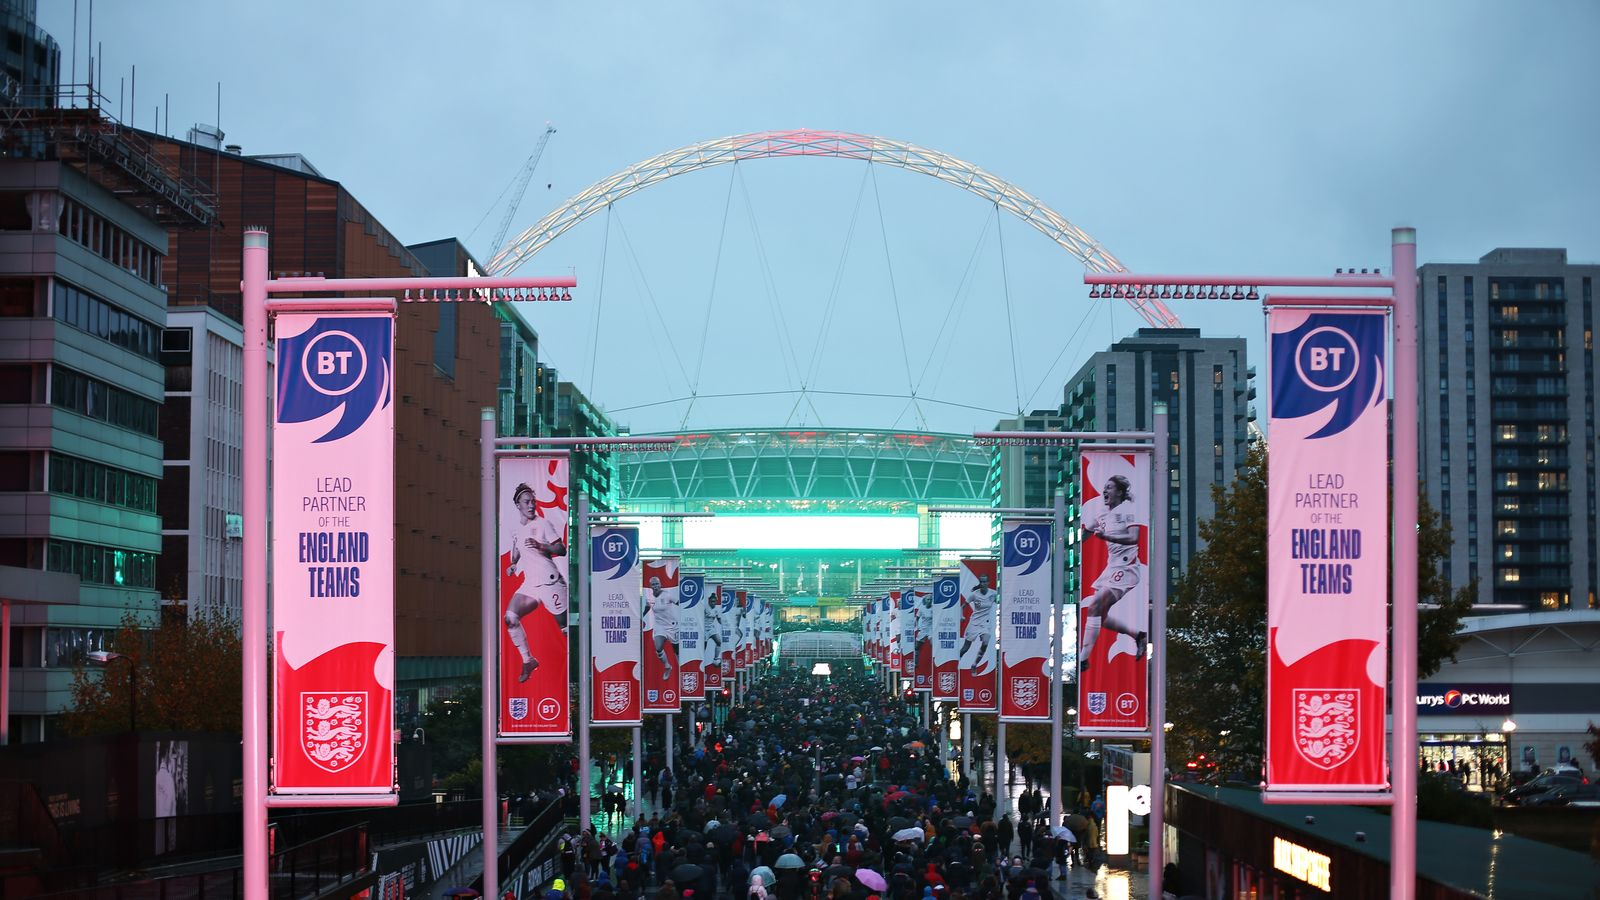 Wembley will host the semi-finals and the final at Euro 2020. Photo: Skysports